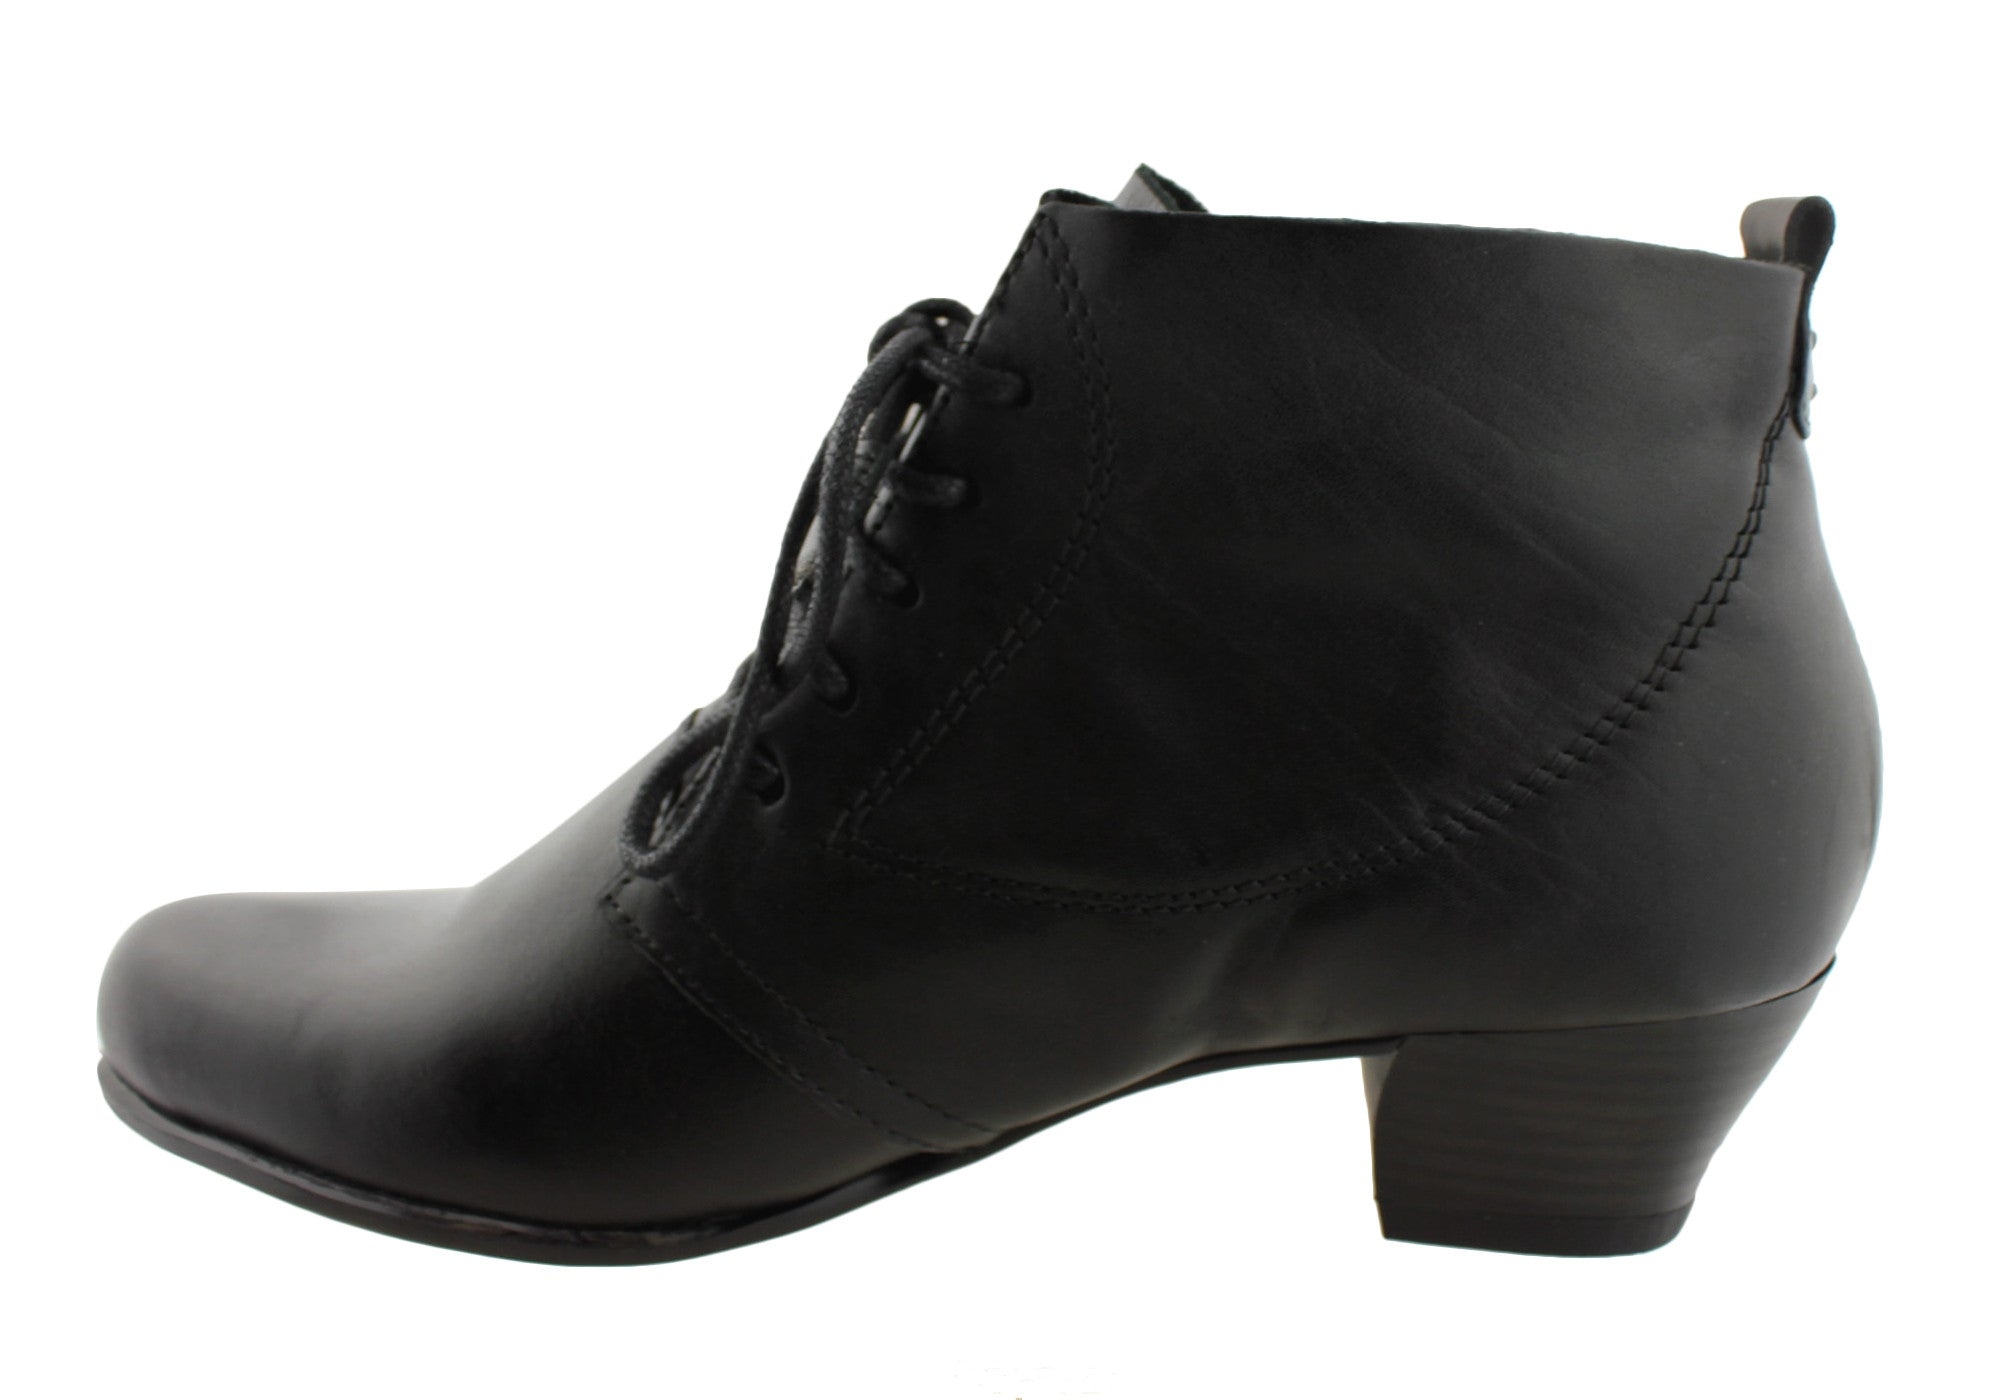 Gino Ventori Taurus Womens Leather Ankle Boots